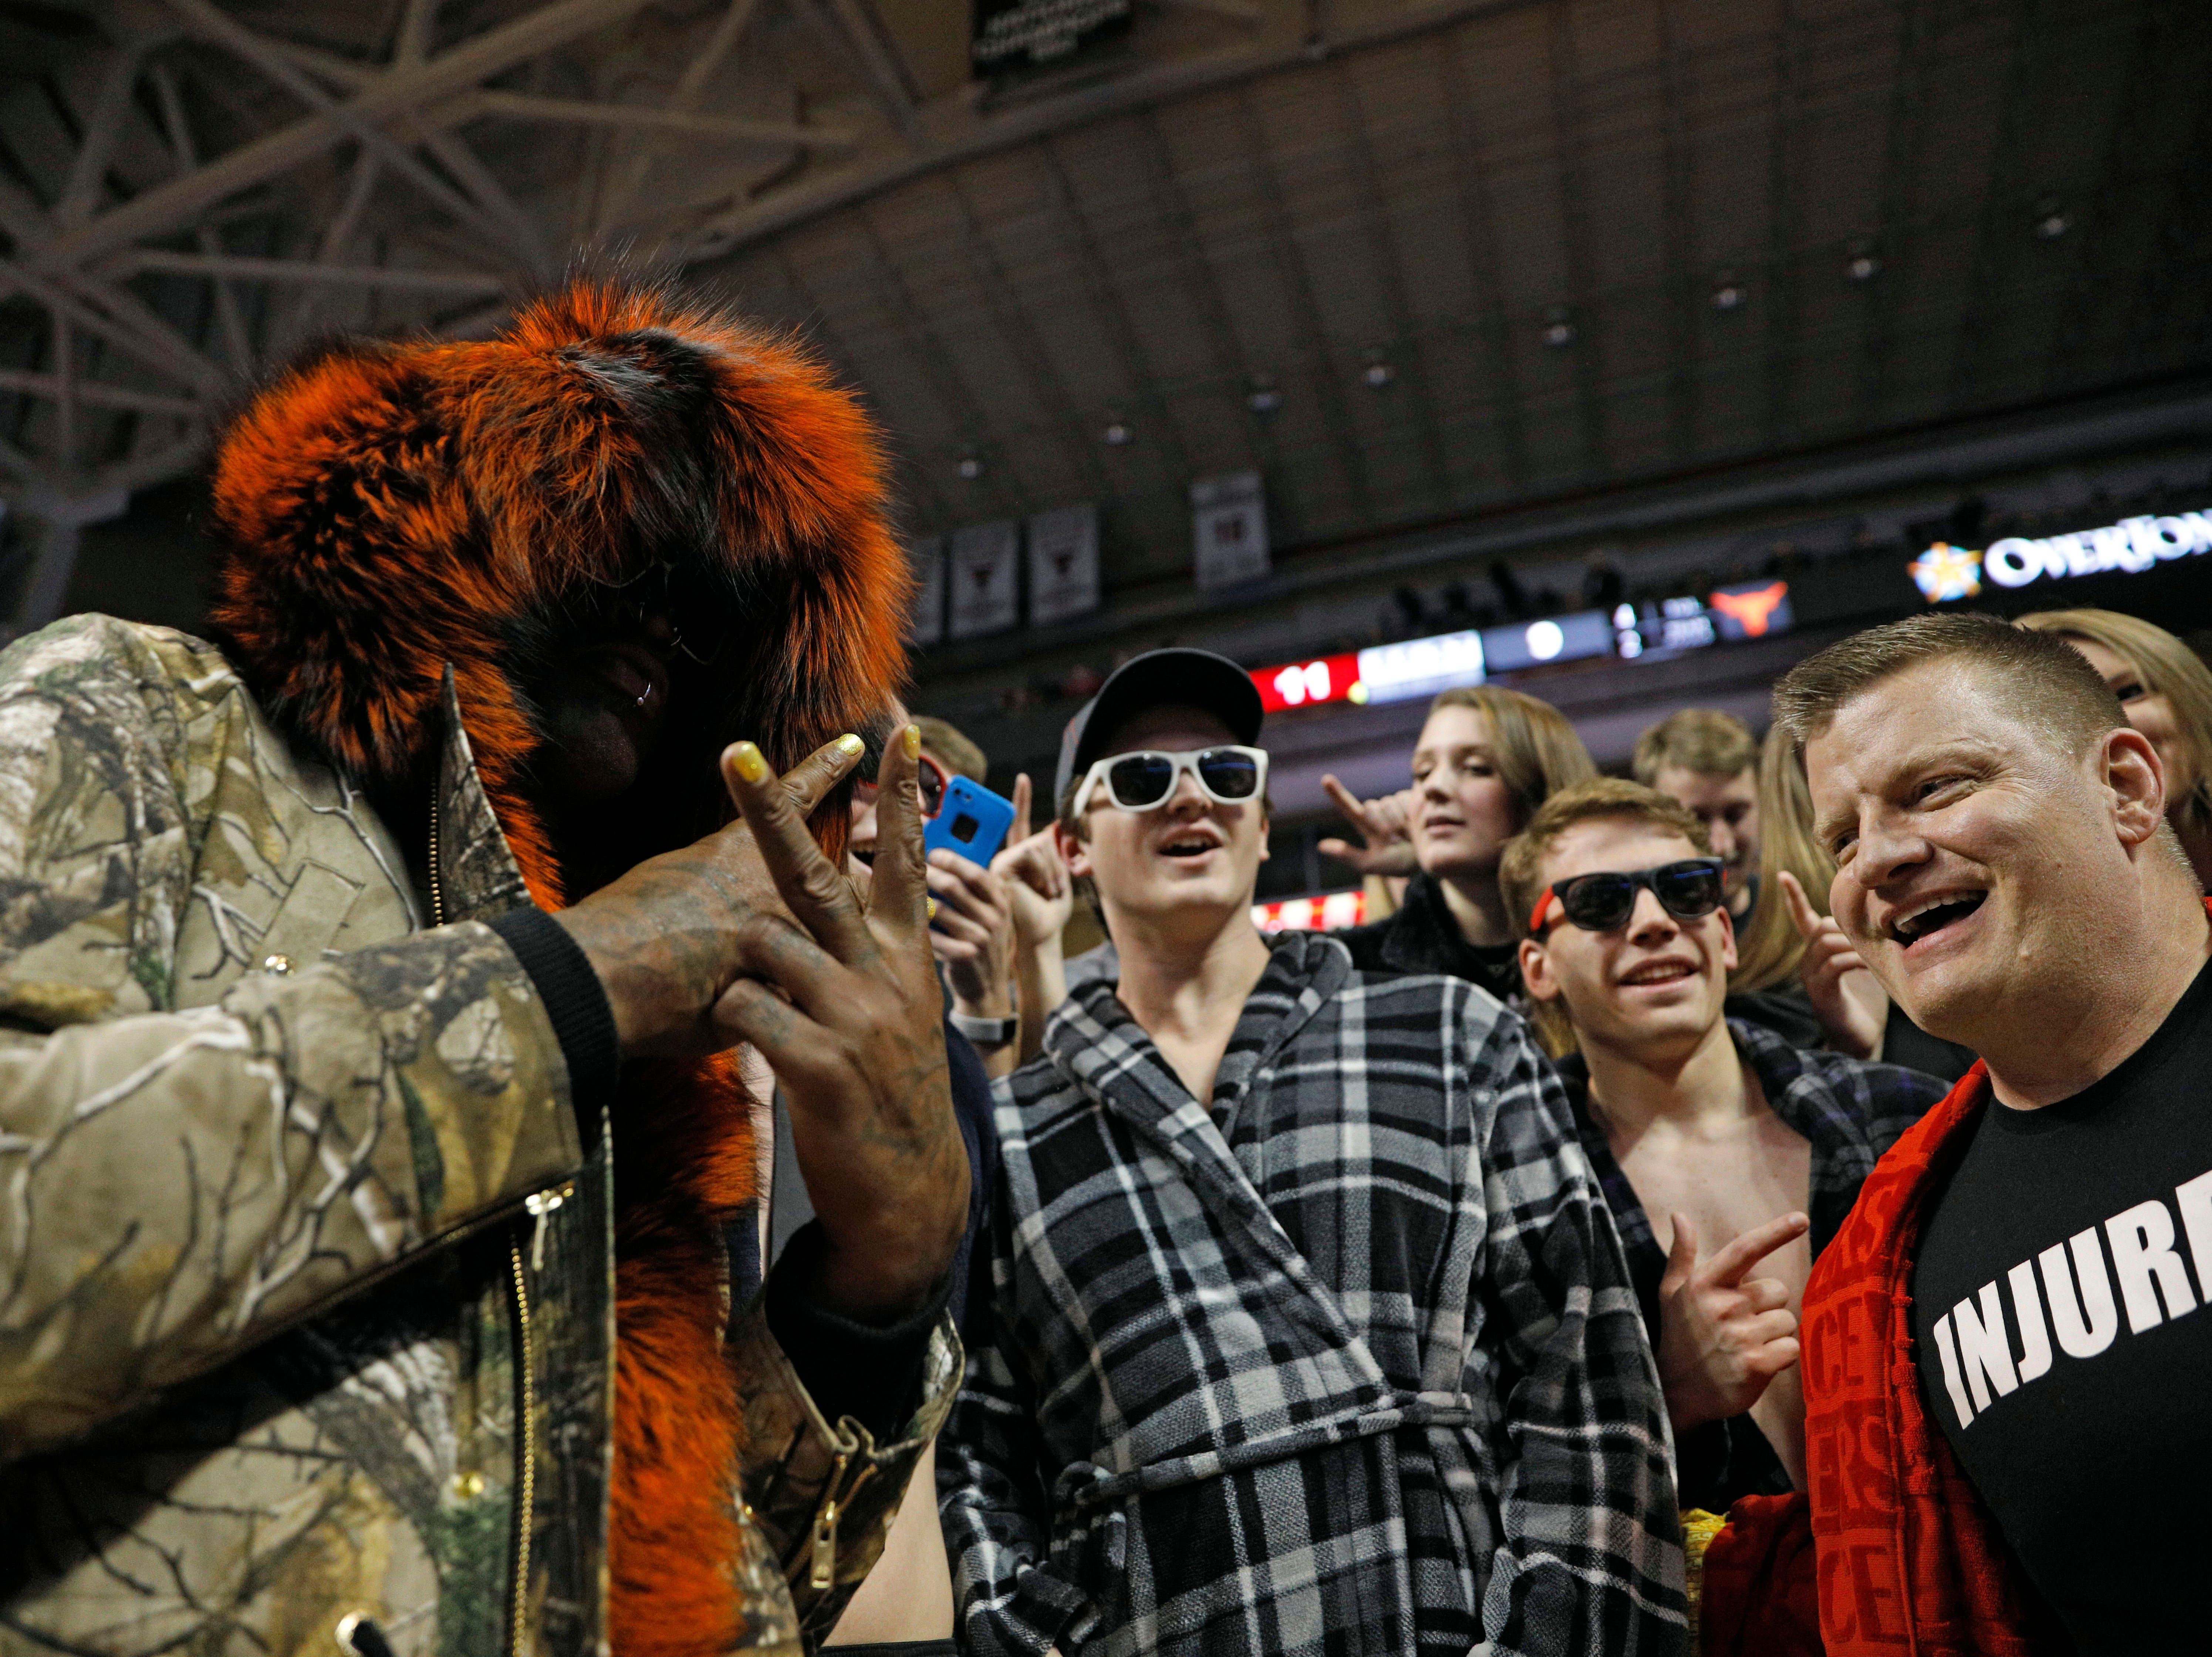 Dennis Rodman, left, cheers with Texas Tech fans during the first half of an NCAA college basketball game against Texas, Monday, March 4, 2019, in Lubbock, Texas. (AP Photo/Brad Tollefson)